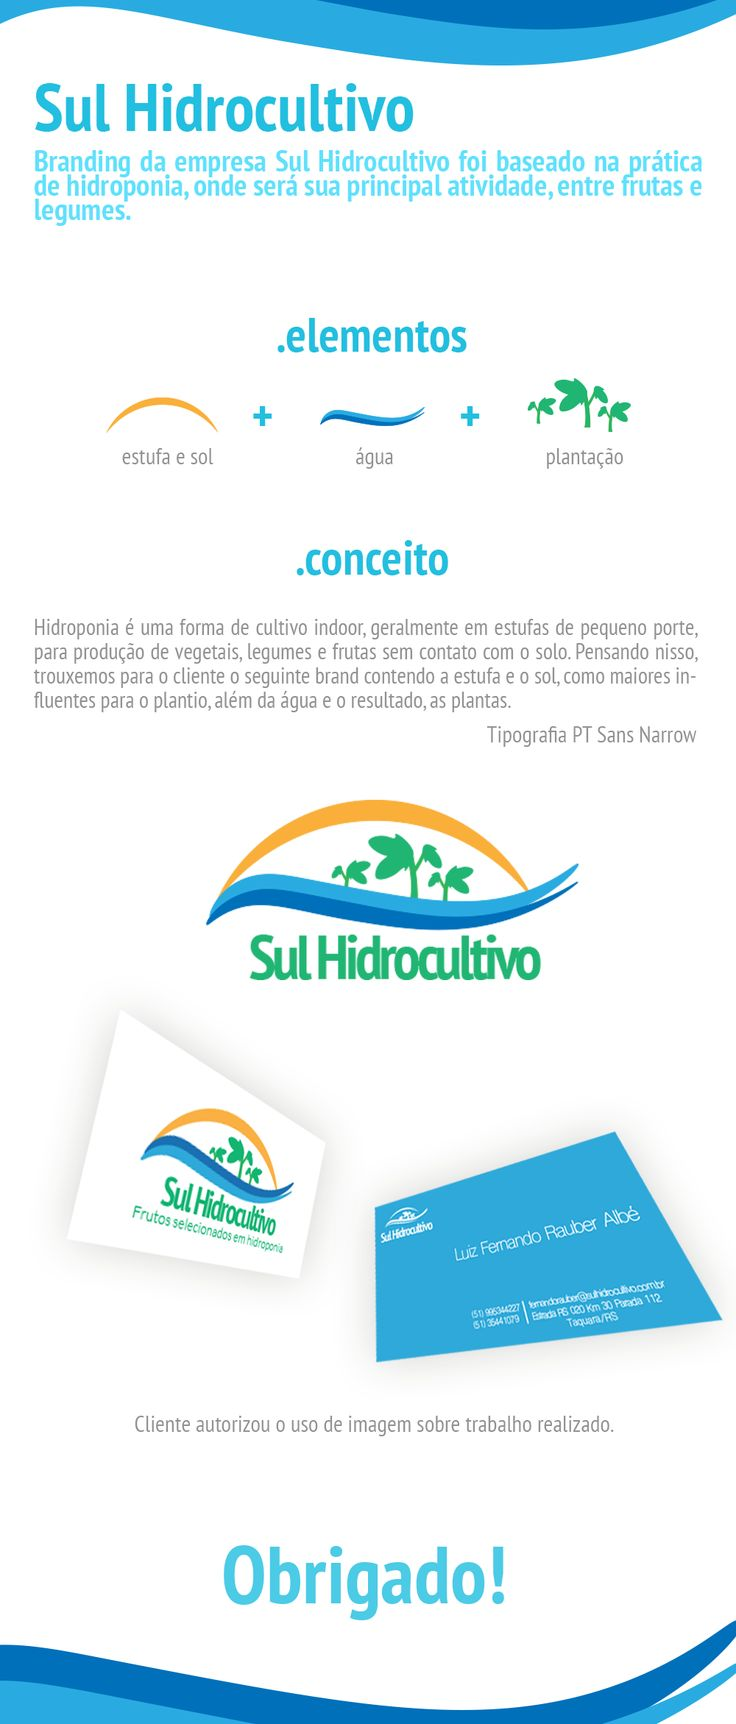 Branding | Sul Hidrocultivo on Behance